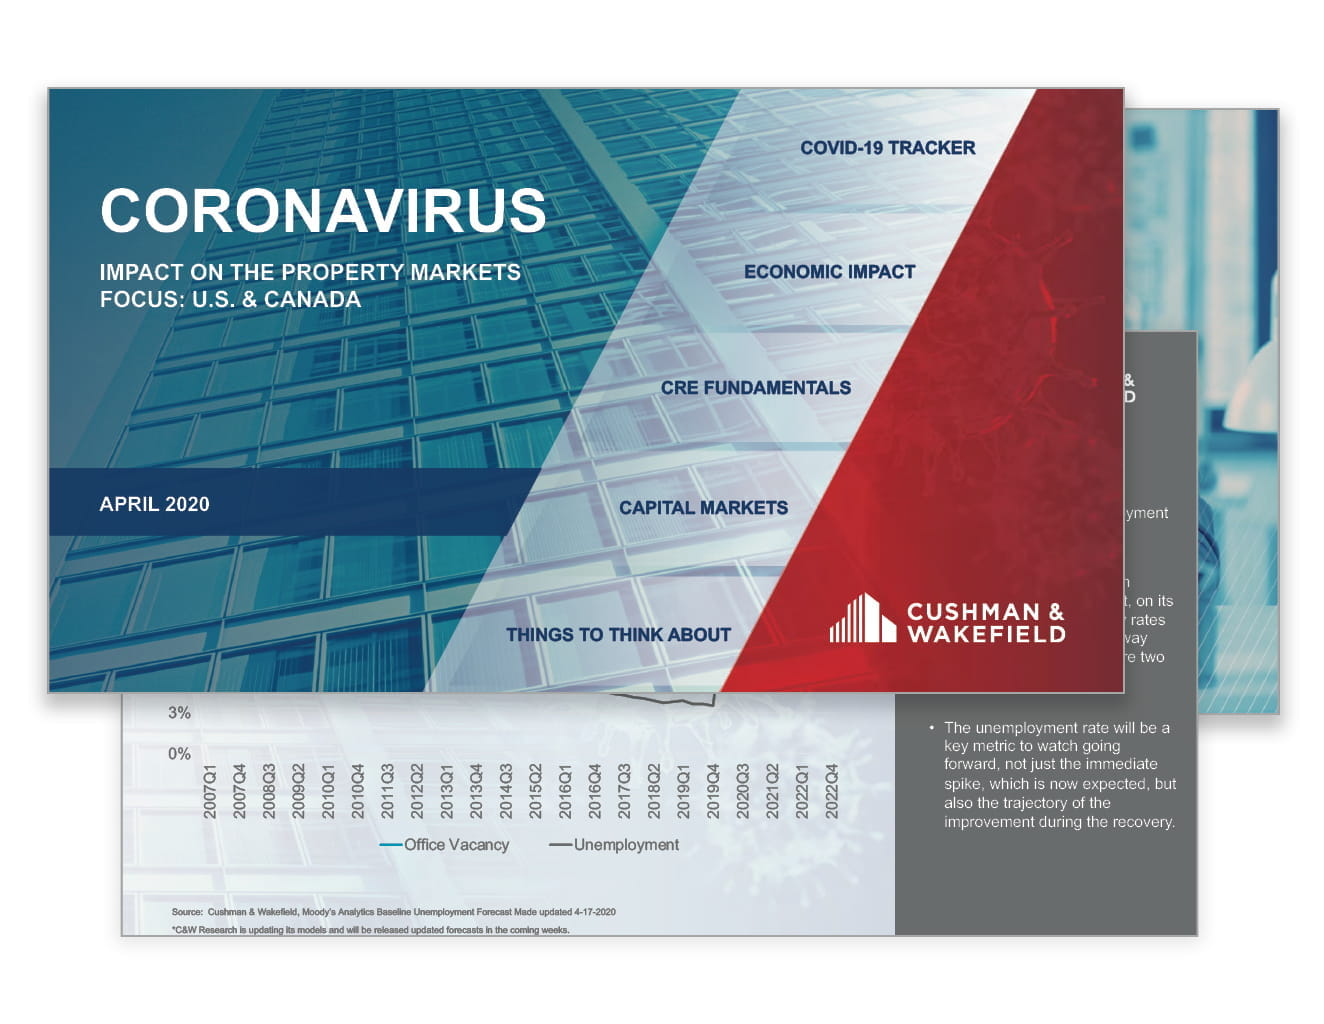 coronavirus impact on property (image)